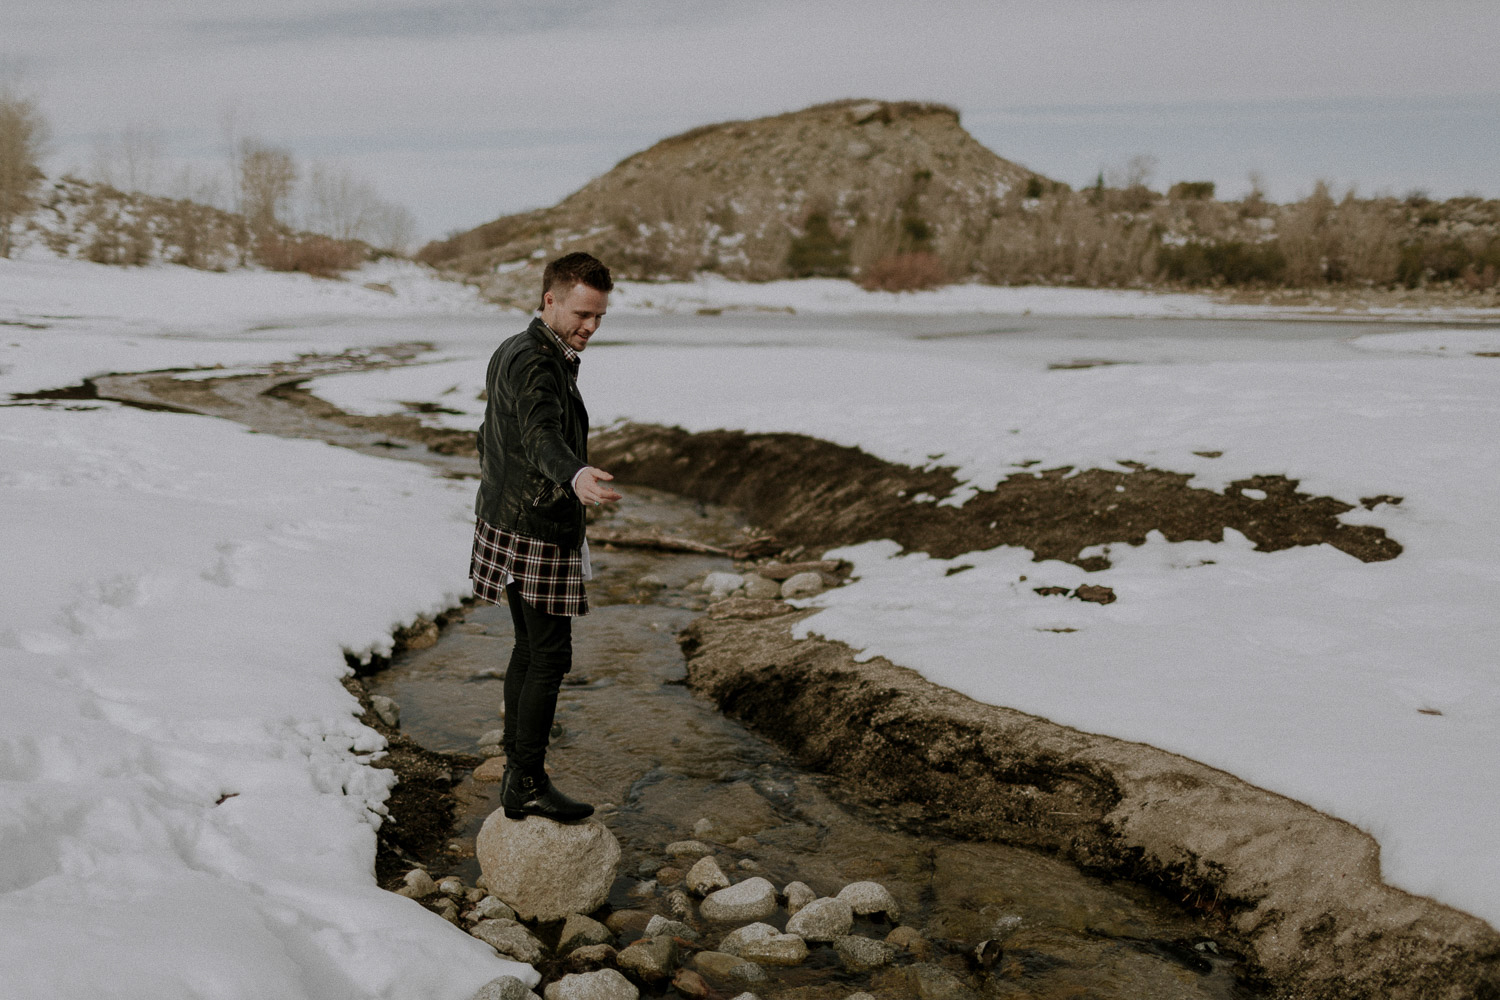 Image of guy stands on rock between snow